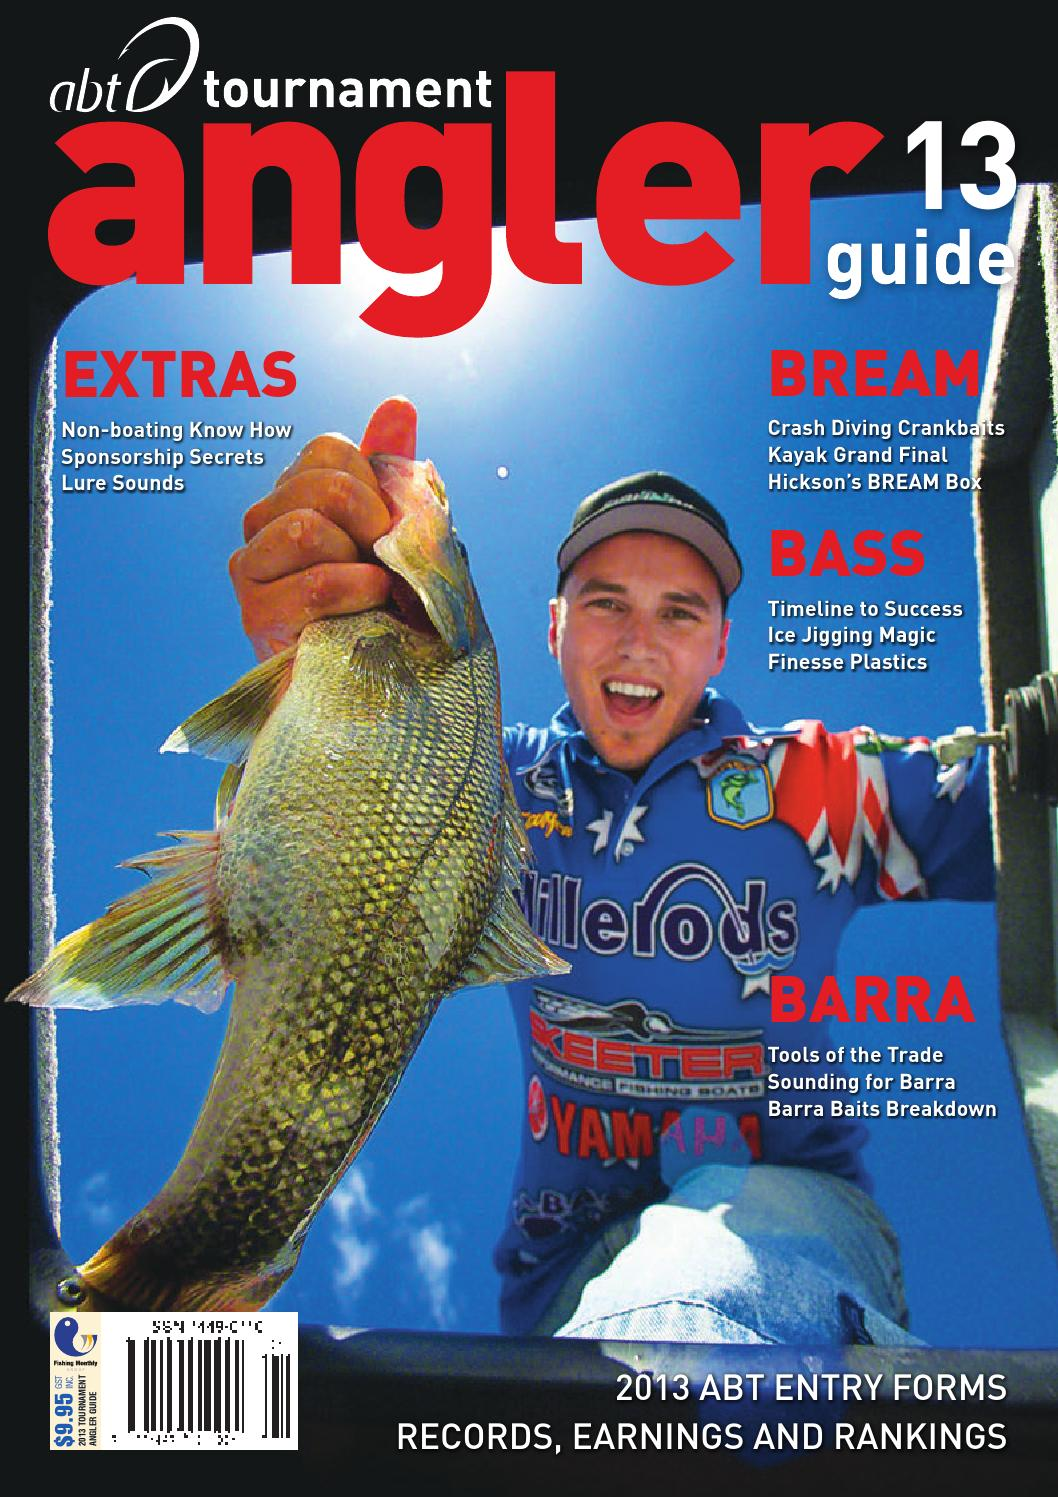 Abt Tournament Angler Guide 13 By Fishing Monthly Issuu Lure Minnow 85 Cm 68gr Crank Bait Treble Hook Crankbait